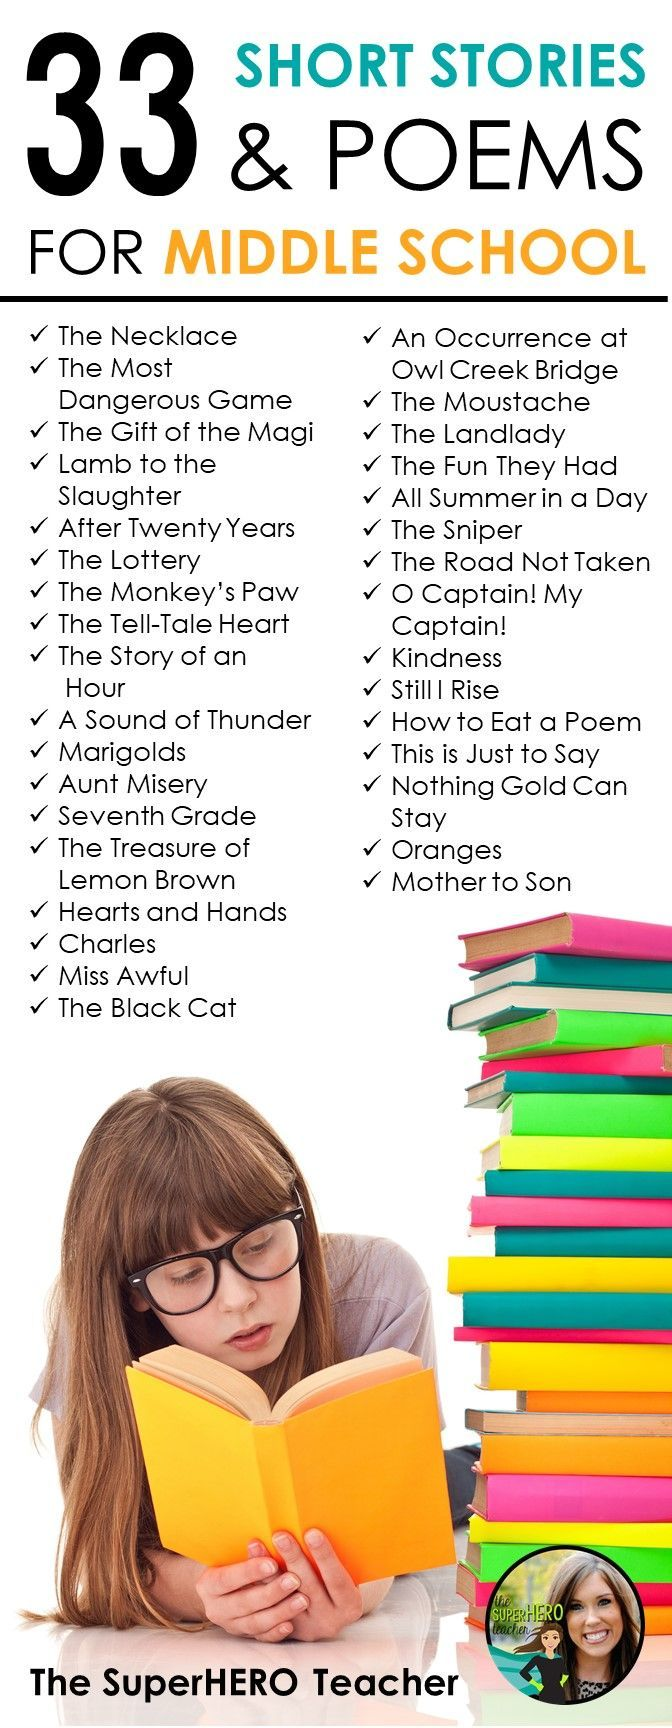 Looking for short stories and poems that are engaging and appropriate for middle school (grades 6-8)? Here are 33 that are tried and true in the classroom! If you follow the link, you'll find activities for all 33 pieces of literature, too! -The SuperHERO Teacher